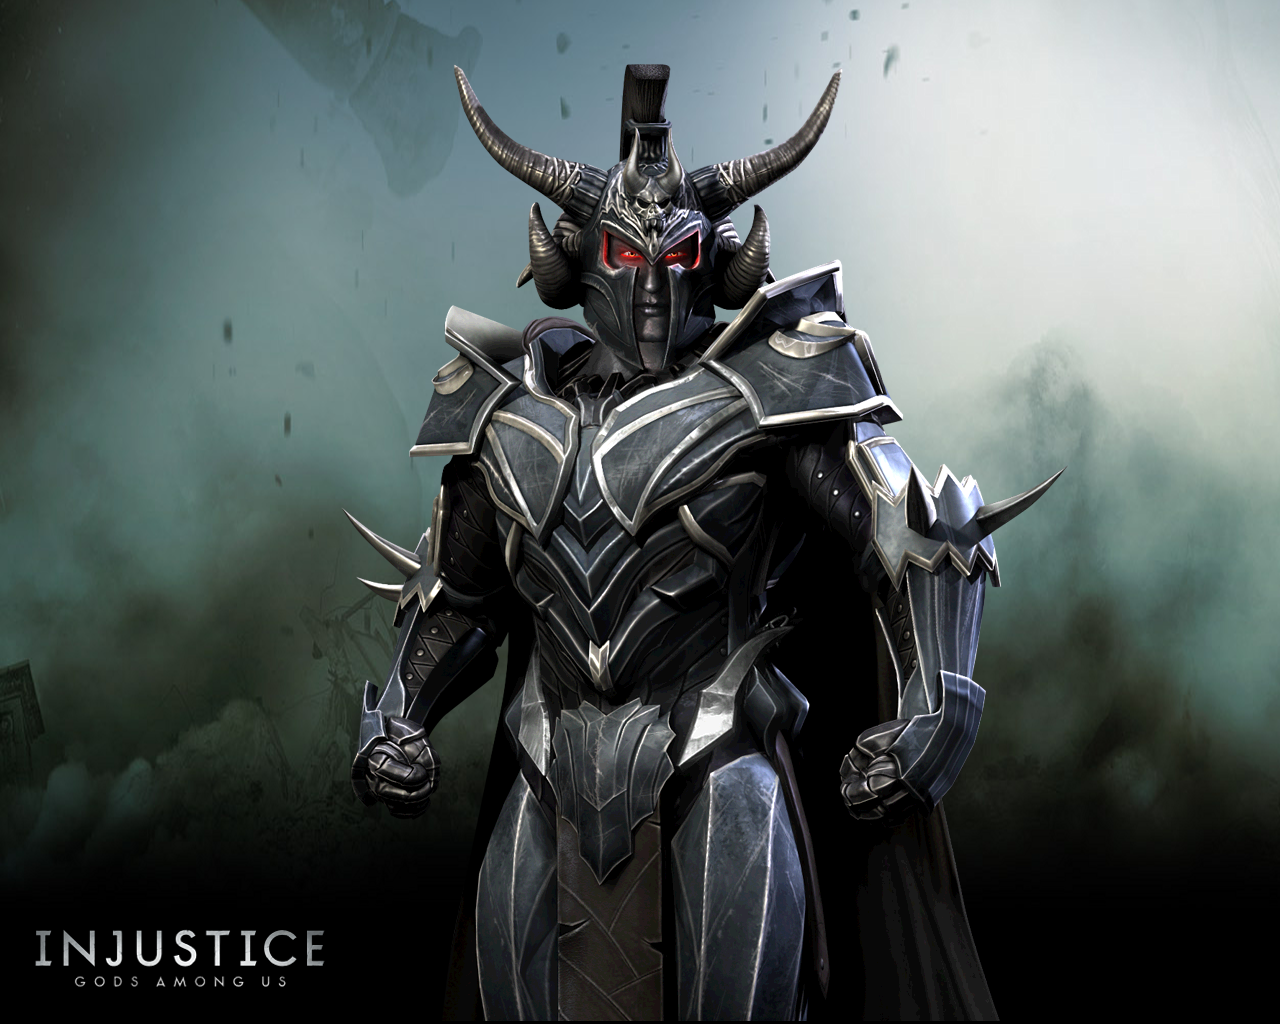 Injustice-Gods-Among-Us-Wallpaper-1280x1024-Ares